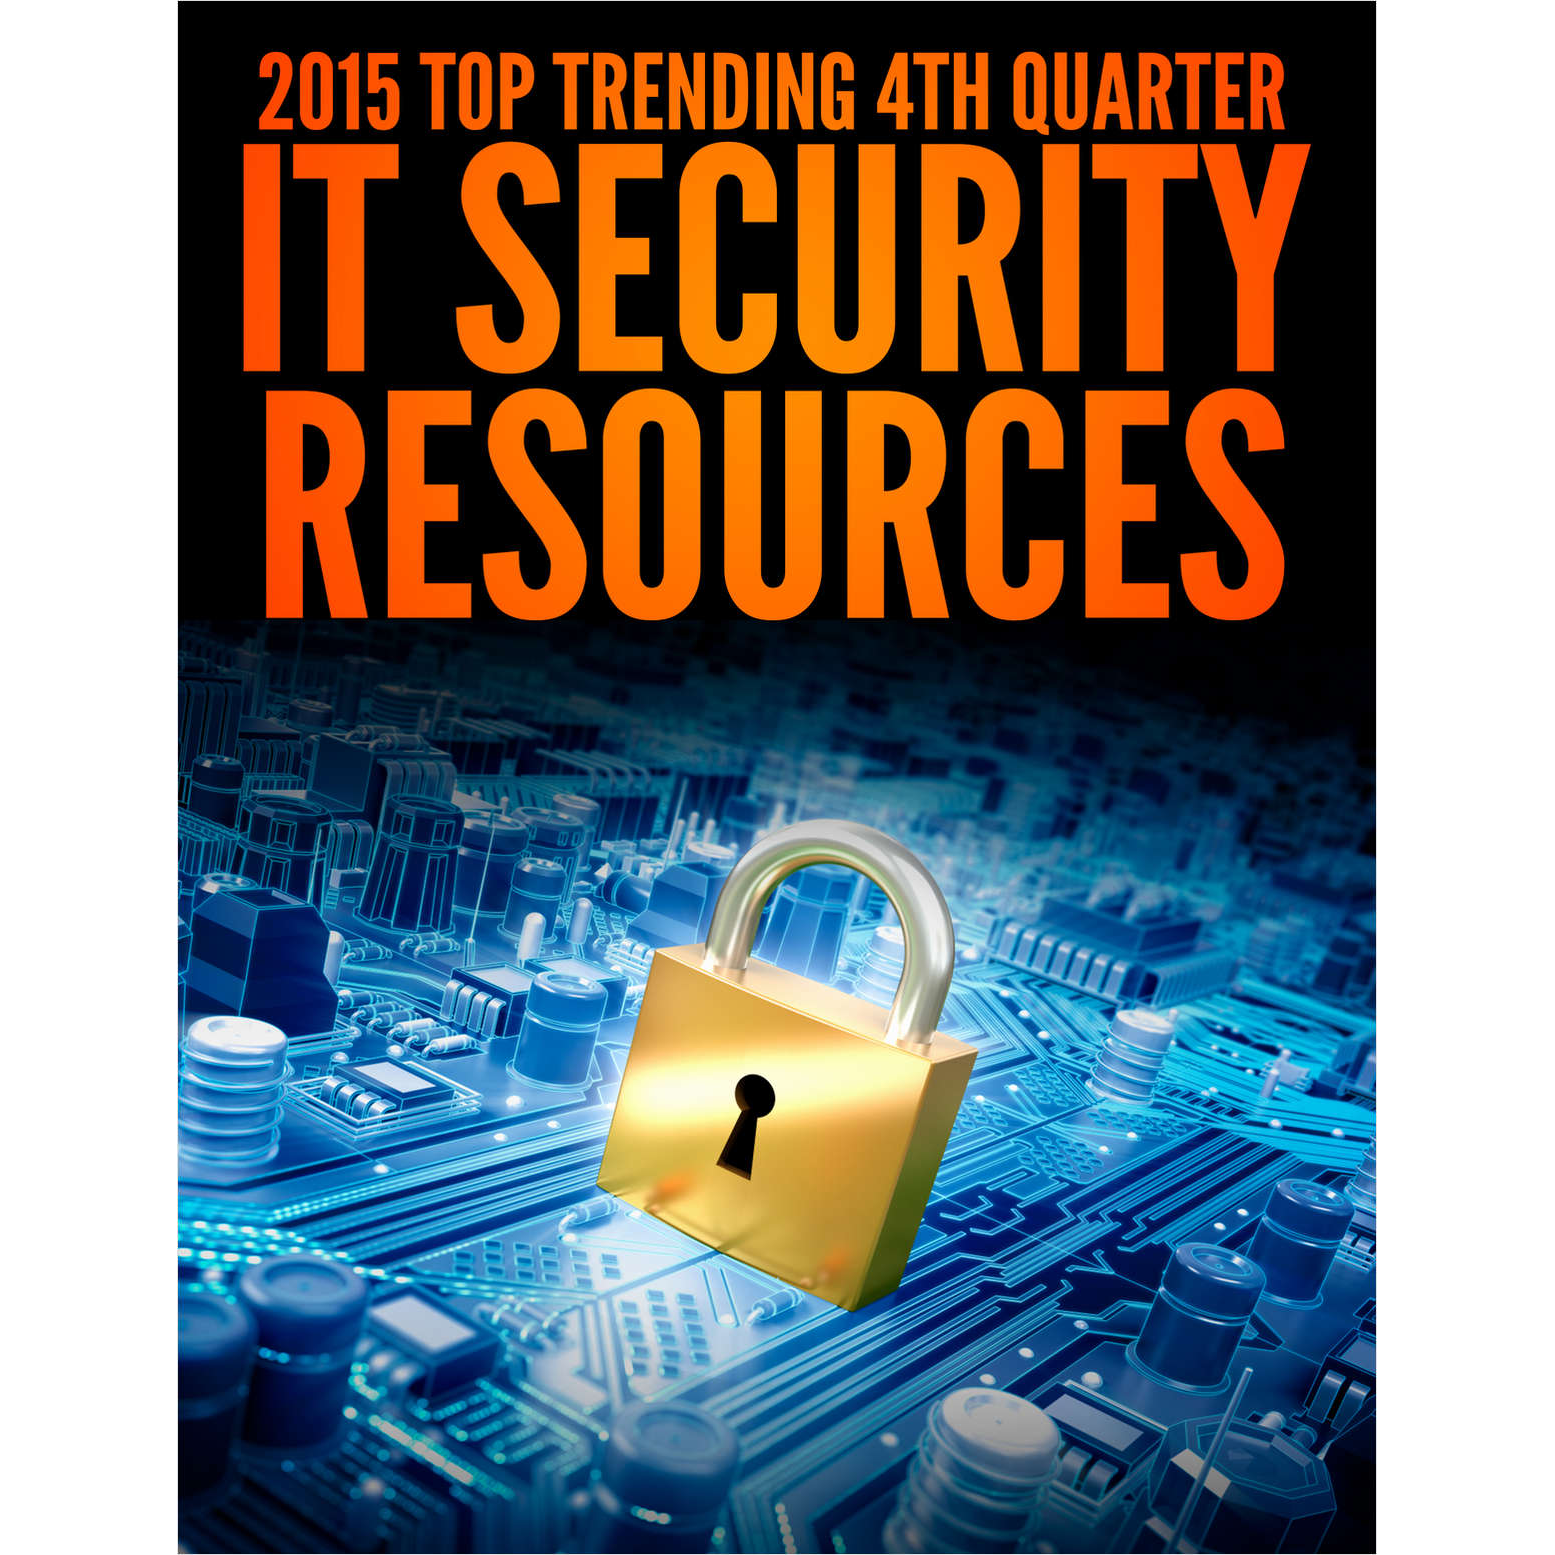 2015 Top Trending 4th Quarter IT Security Resources Screenshot